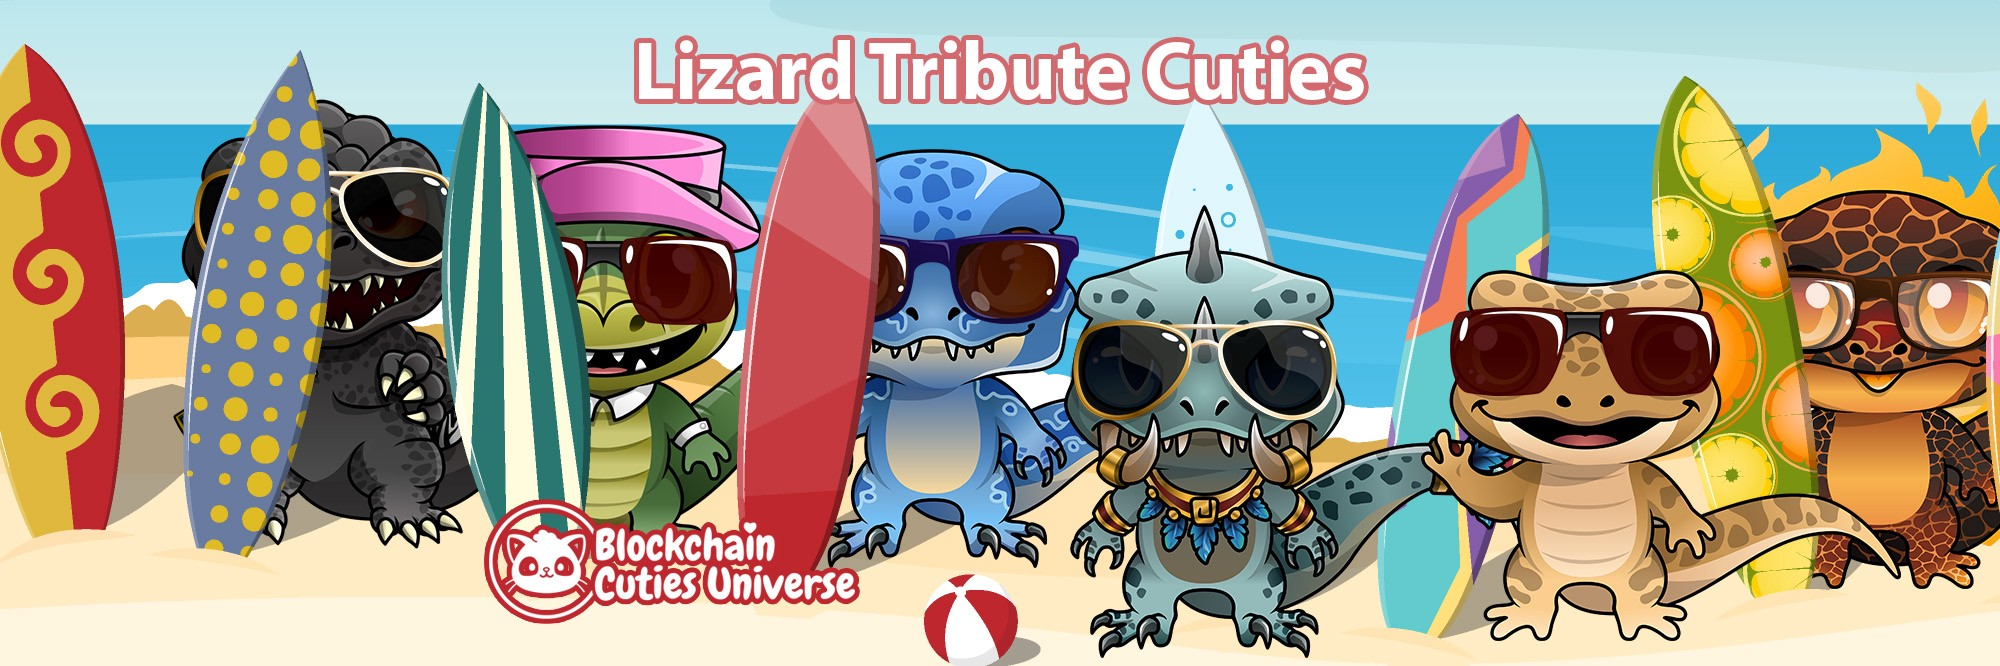 Lizard Tribute Cuties Everyone Forgot About